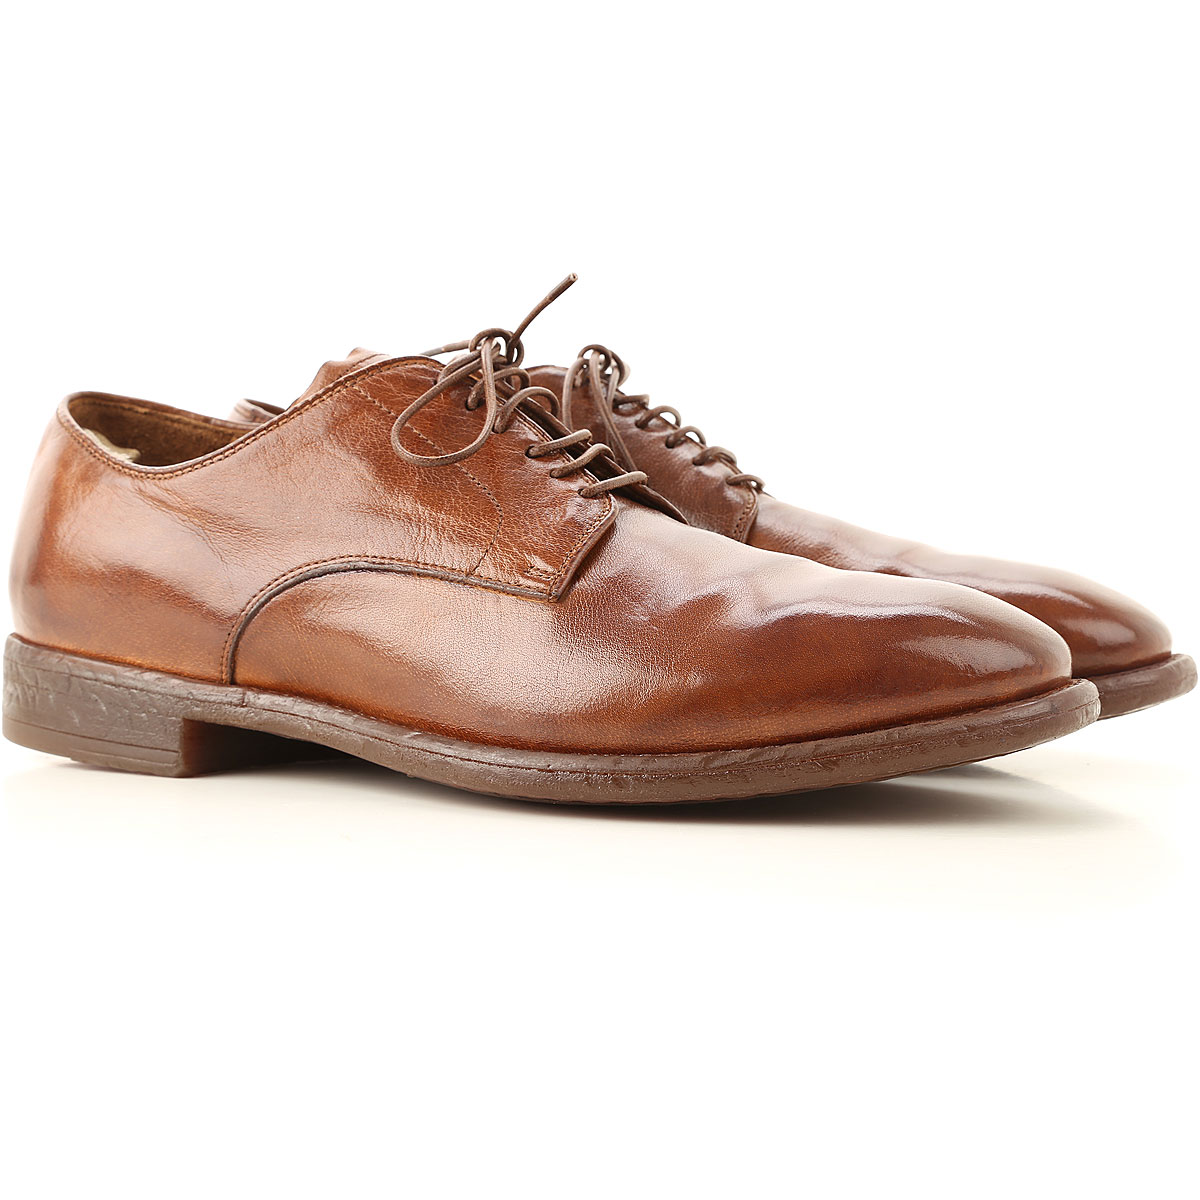 Officine Creative Lace Up Shoes for Men Oxfords, Derbies and Brogues On Sale, Tobacco, Leather, 2019, 10 10.25 10.5 12 6.5 7 7.5 7.75 8 8.5 9 9.5